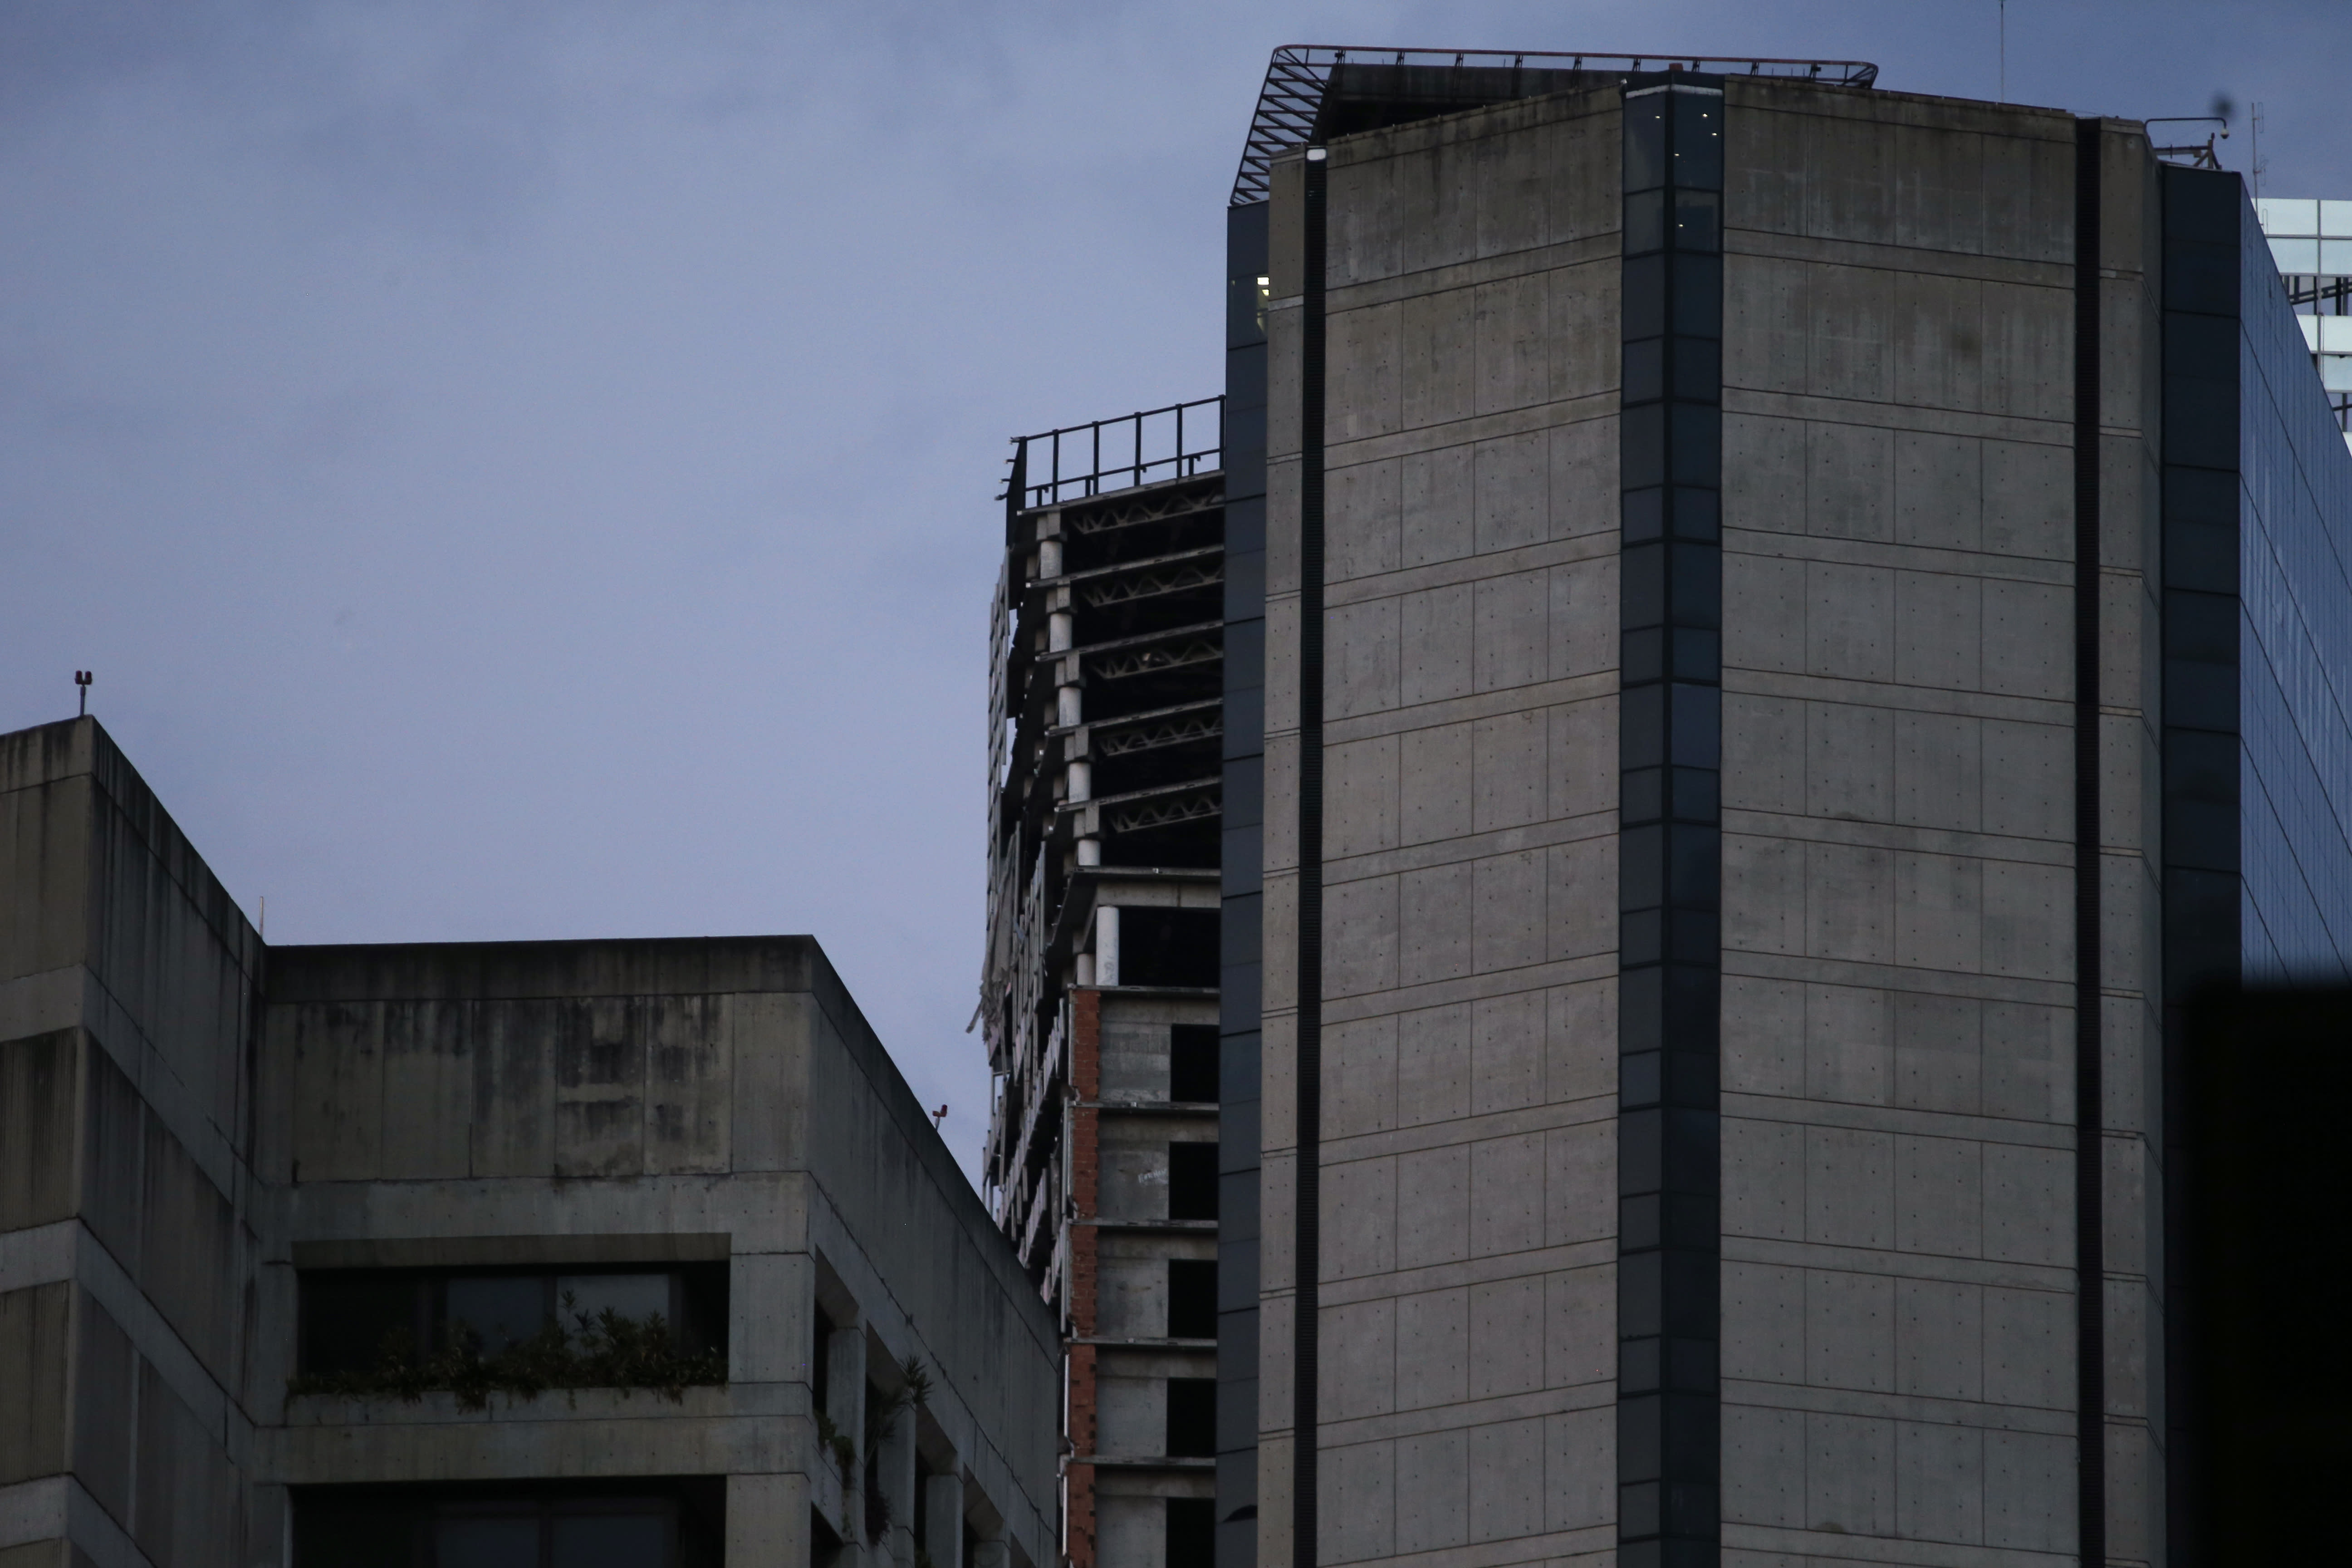 """An abandoned, unfinished skyscraper known as """"The Tower of David"""" shows an inclination on the top floors where the columns are exposed, top center, after a powerful earthquake shook eastern Venezuela, causing buildings to be evacuated in the capital of Caracas, Venezuela, Tuesday, Aug. 21, 2018. The quake was felt as far away as Colombia's capital and in the Venezuelan capital office workers evacuated buildings and people fled homes. (AP Photo/Ariana Cubillos)"""